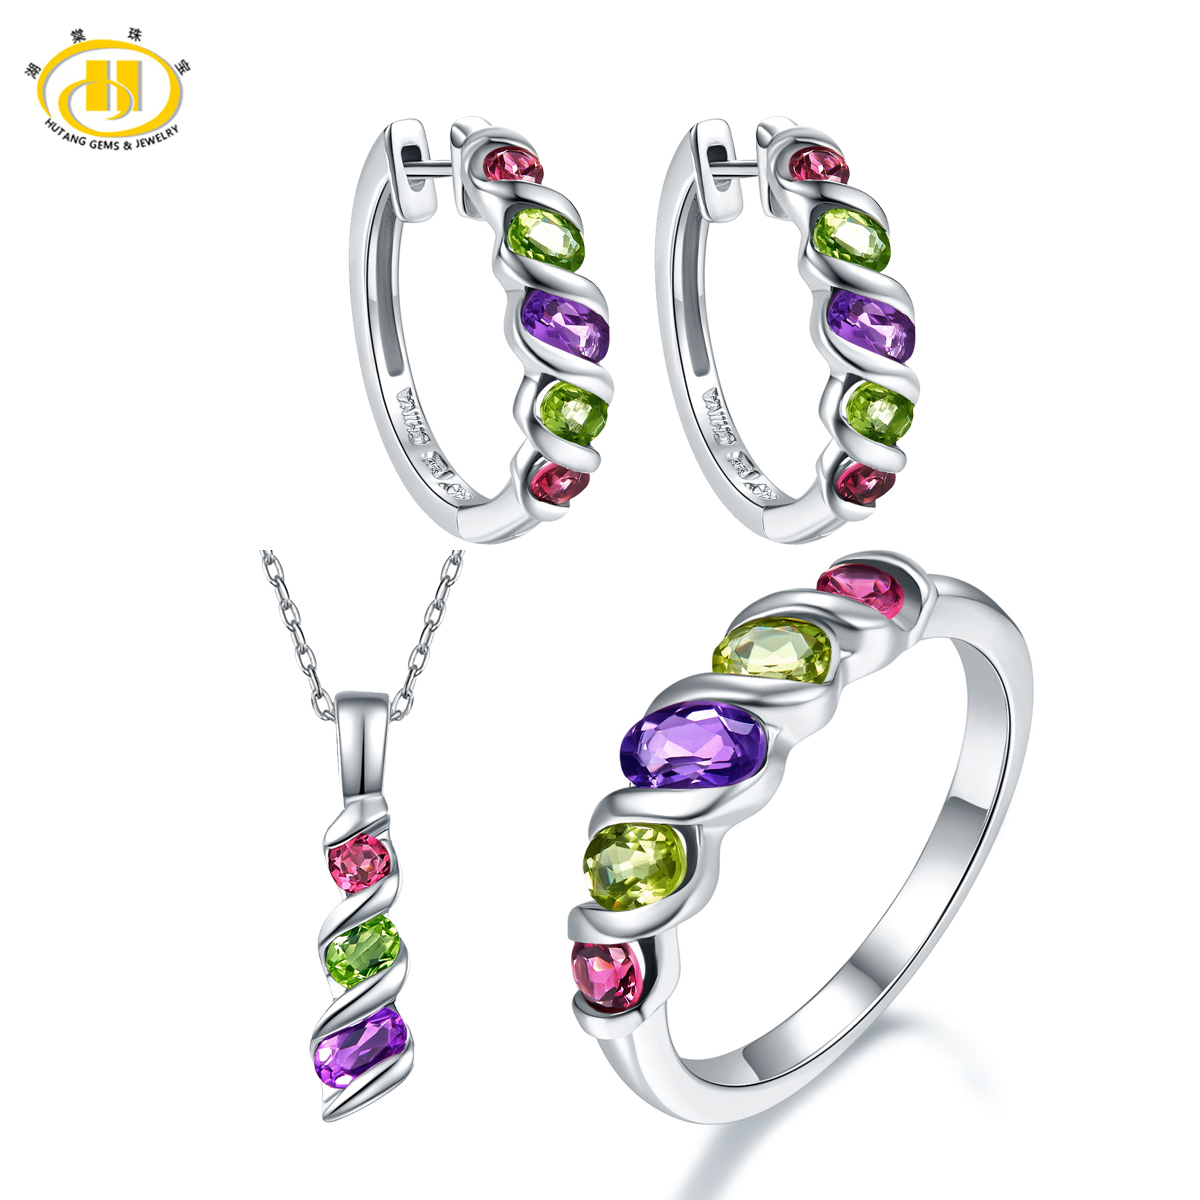 Hutang New Fashion Design Colorful Gemstone Jewelry Sets for Women Solid 925 Sterling Silver Jewellry Ring Pendant Earrings Gift